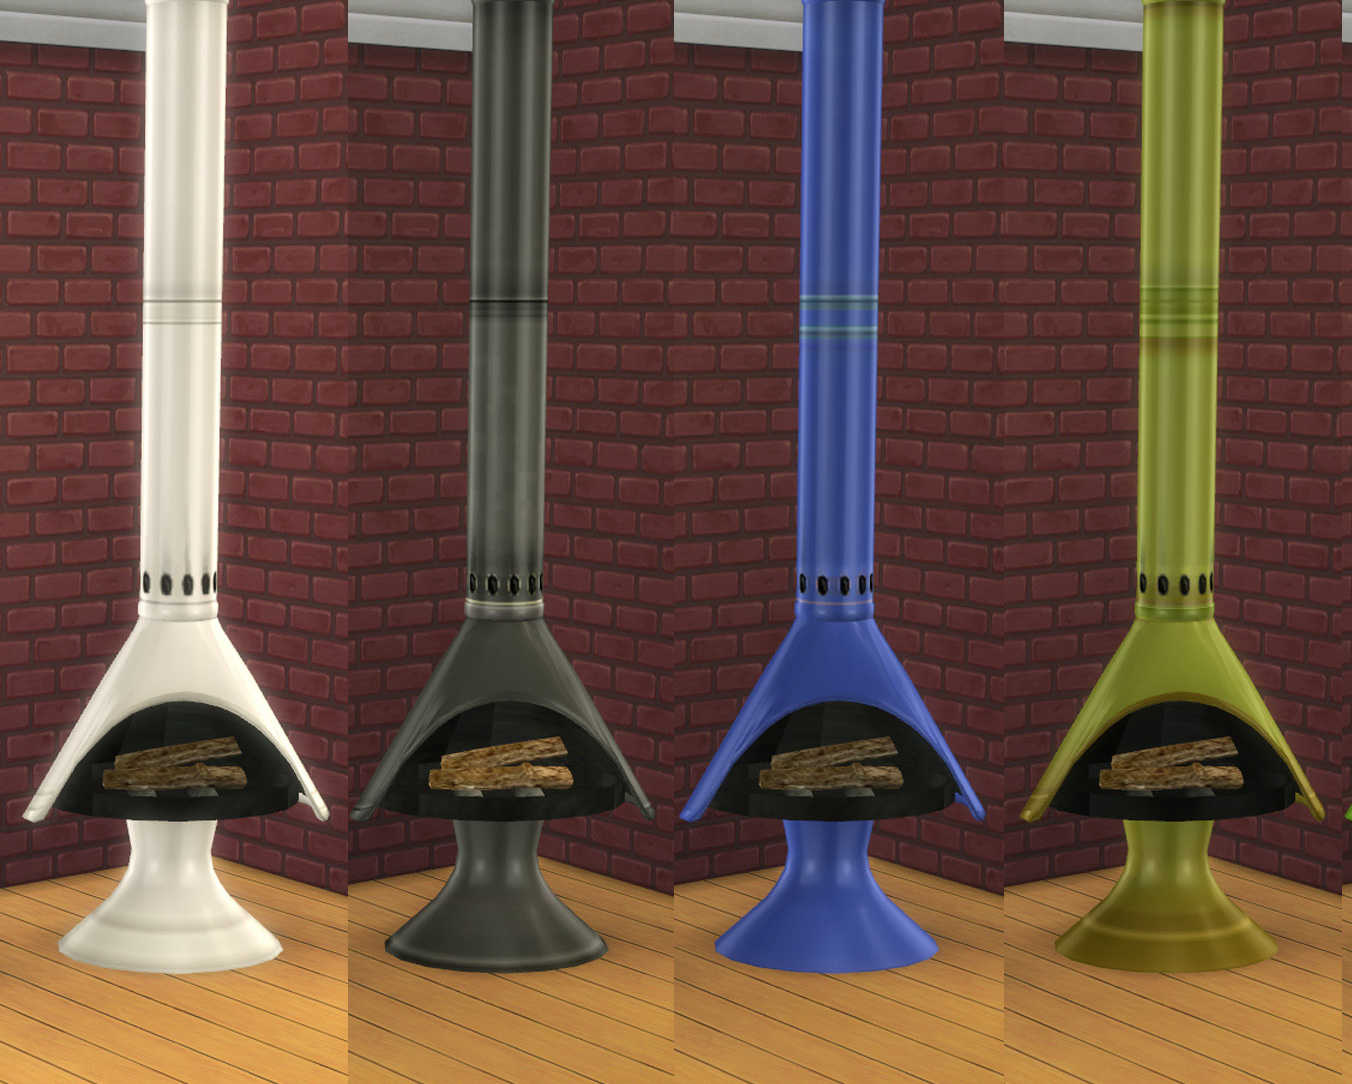 My Sims 4 Blog: TS2 to TS4 - Retro Fireplace by LOolyharb1